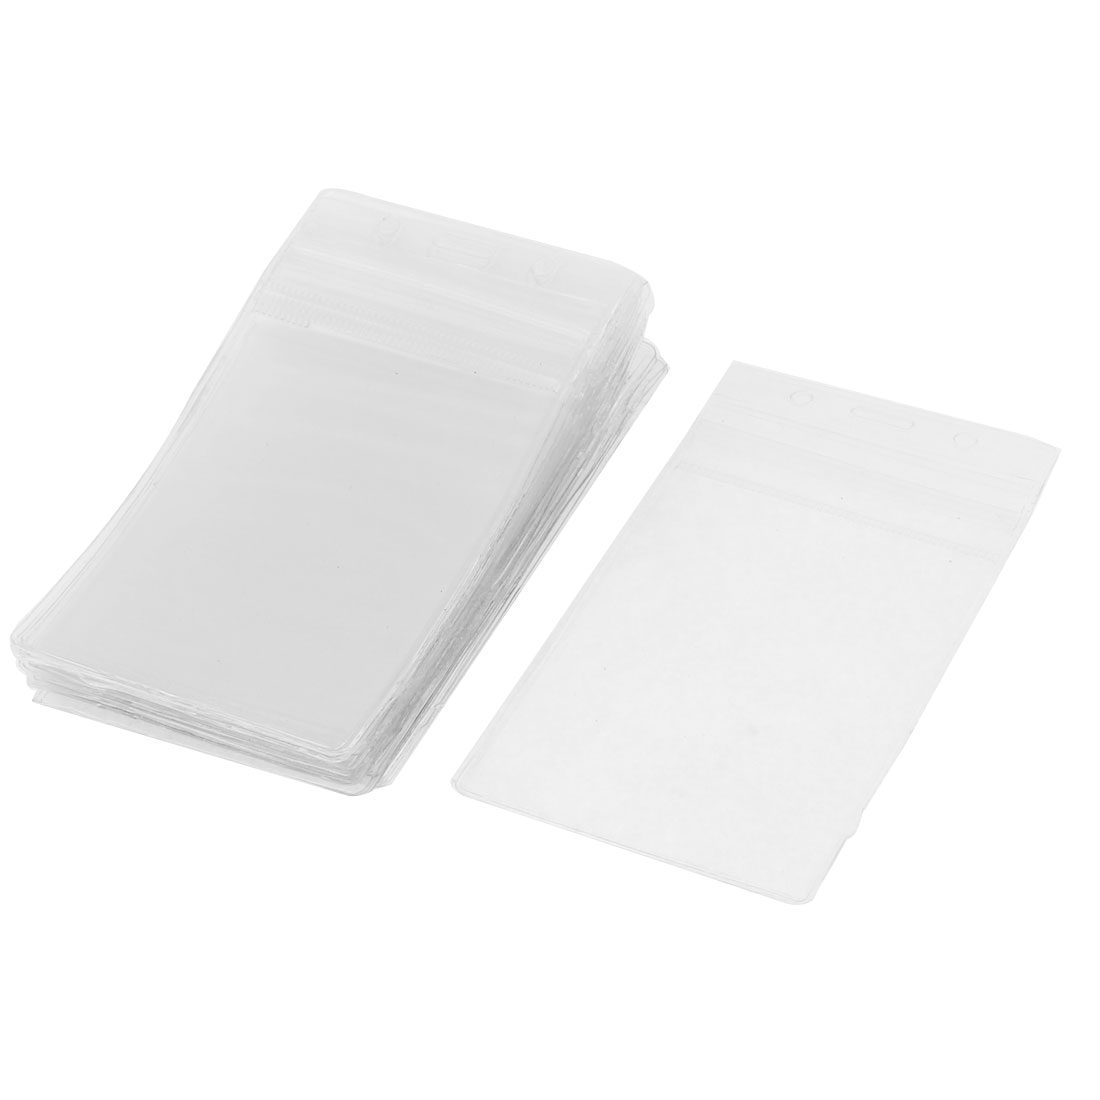 Office Plastic Vertical Name Card ID Badge Holder Protector Pouch Clear 20pcs